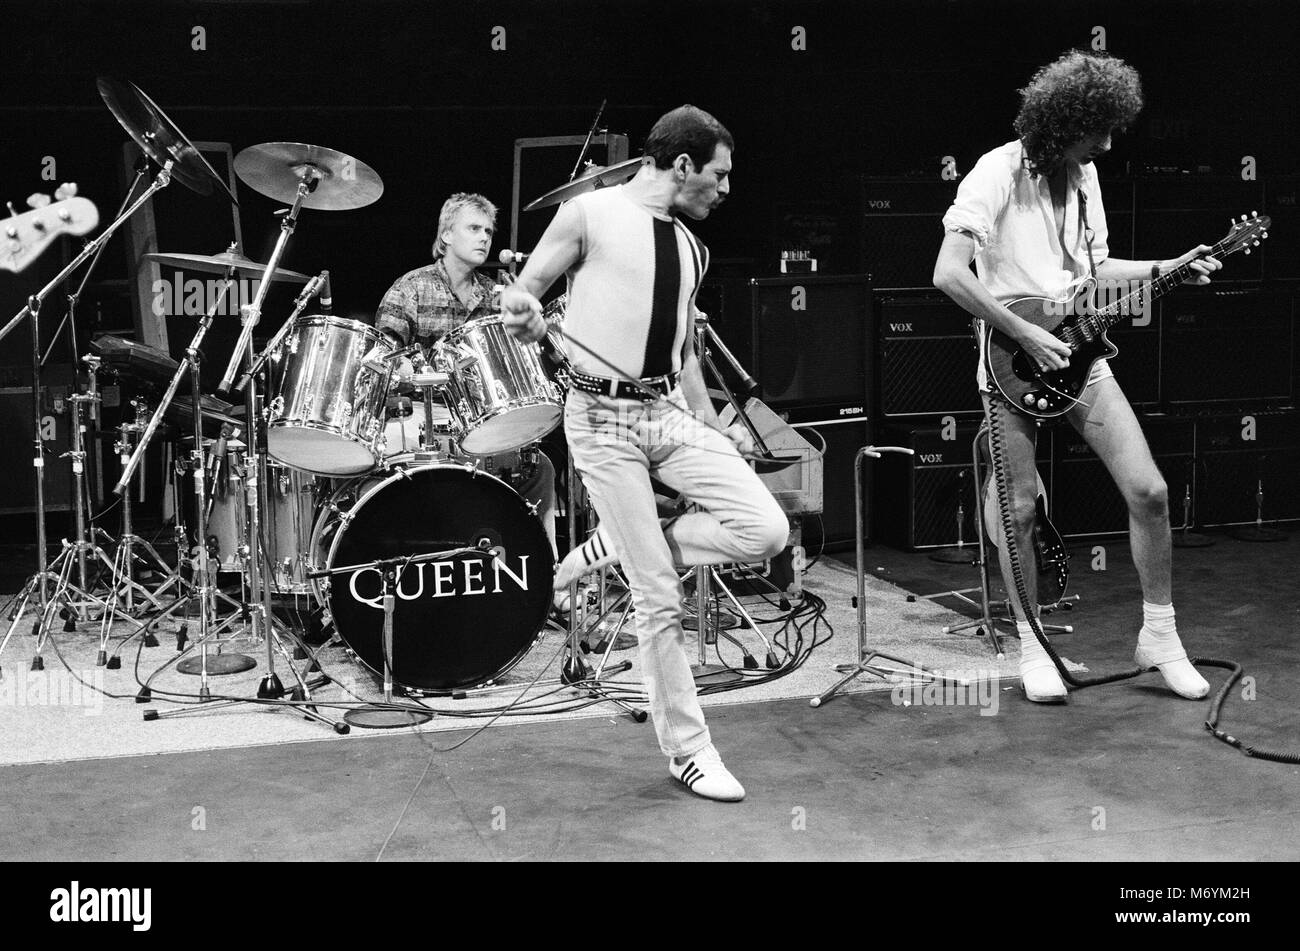 Freddie Mercury Live Aid High Resolution Stock Photography And Images Alamy